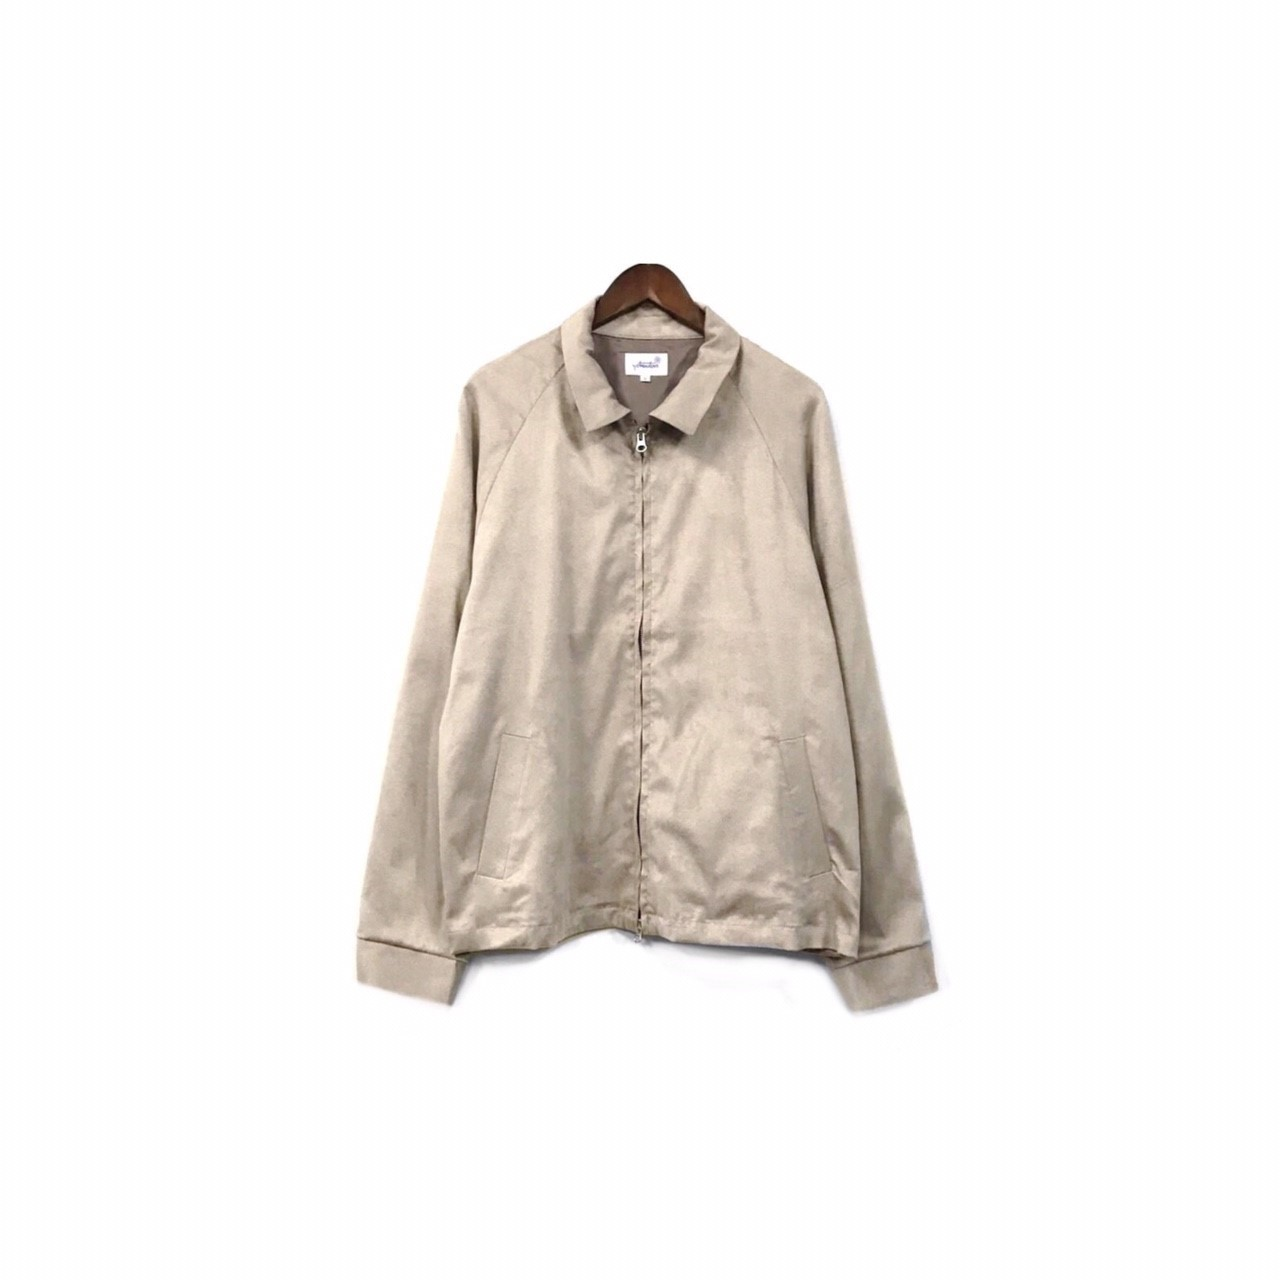 yotsuba - Fake Suede Swingtop Jacket / Beige ¥34000+tax